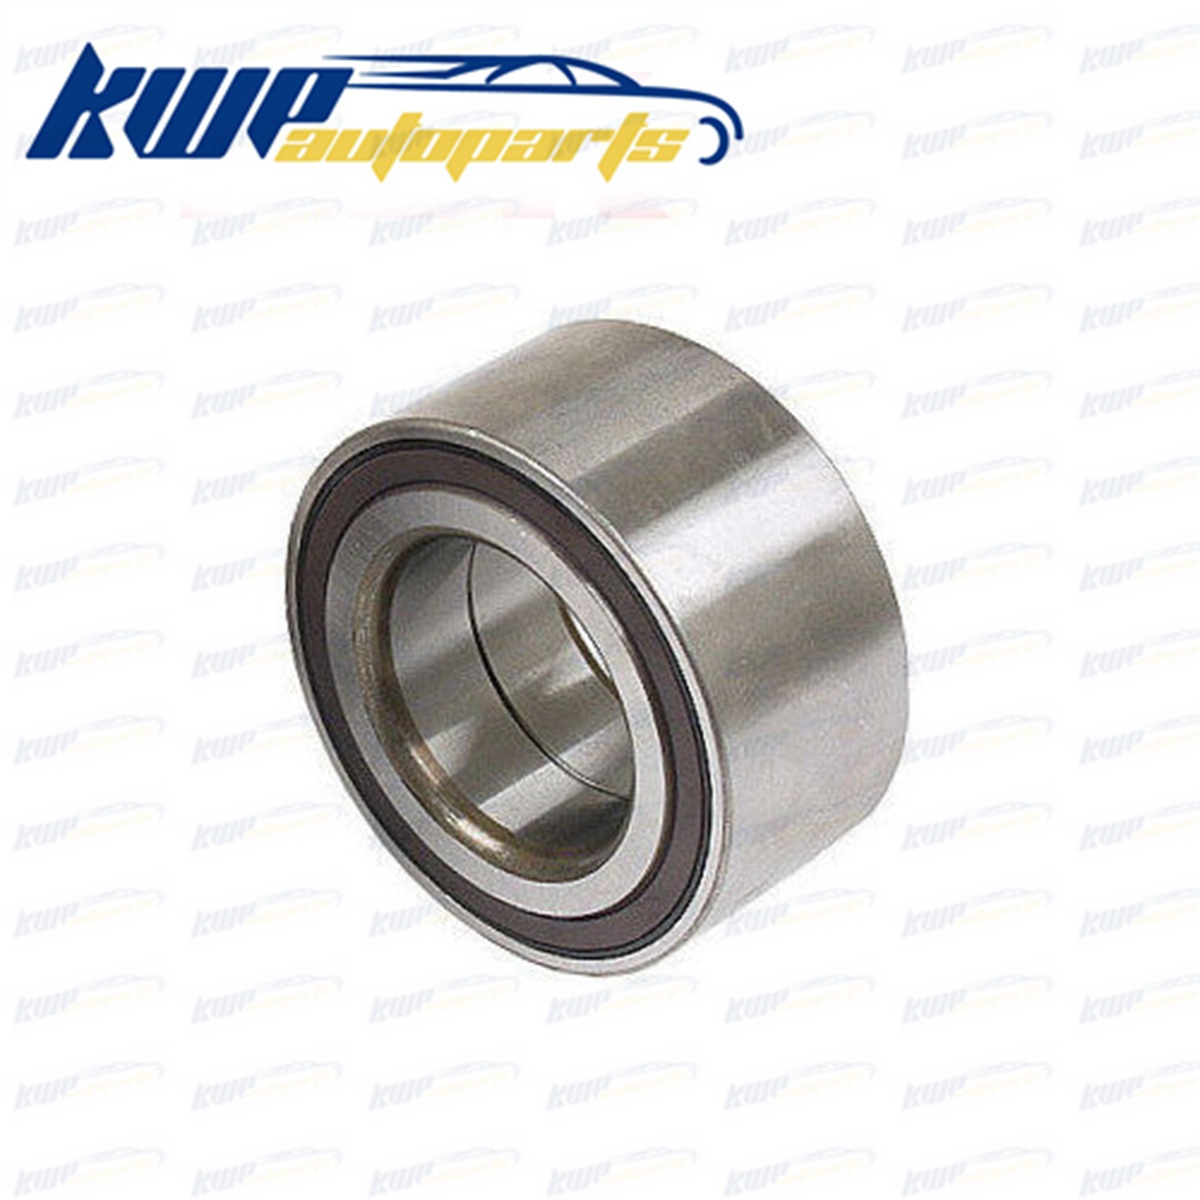 Front Wheel Bearing For Acura TL TSX Honda Accord Civic Jaguar XFR XJ XKR Land Rover Range #44300-SDA-A51 44300-SDA-A52